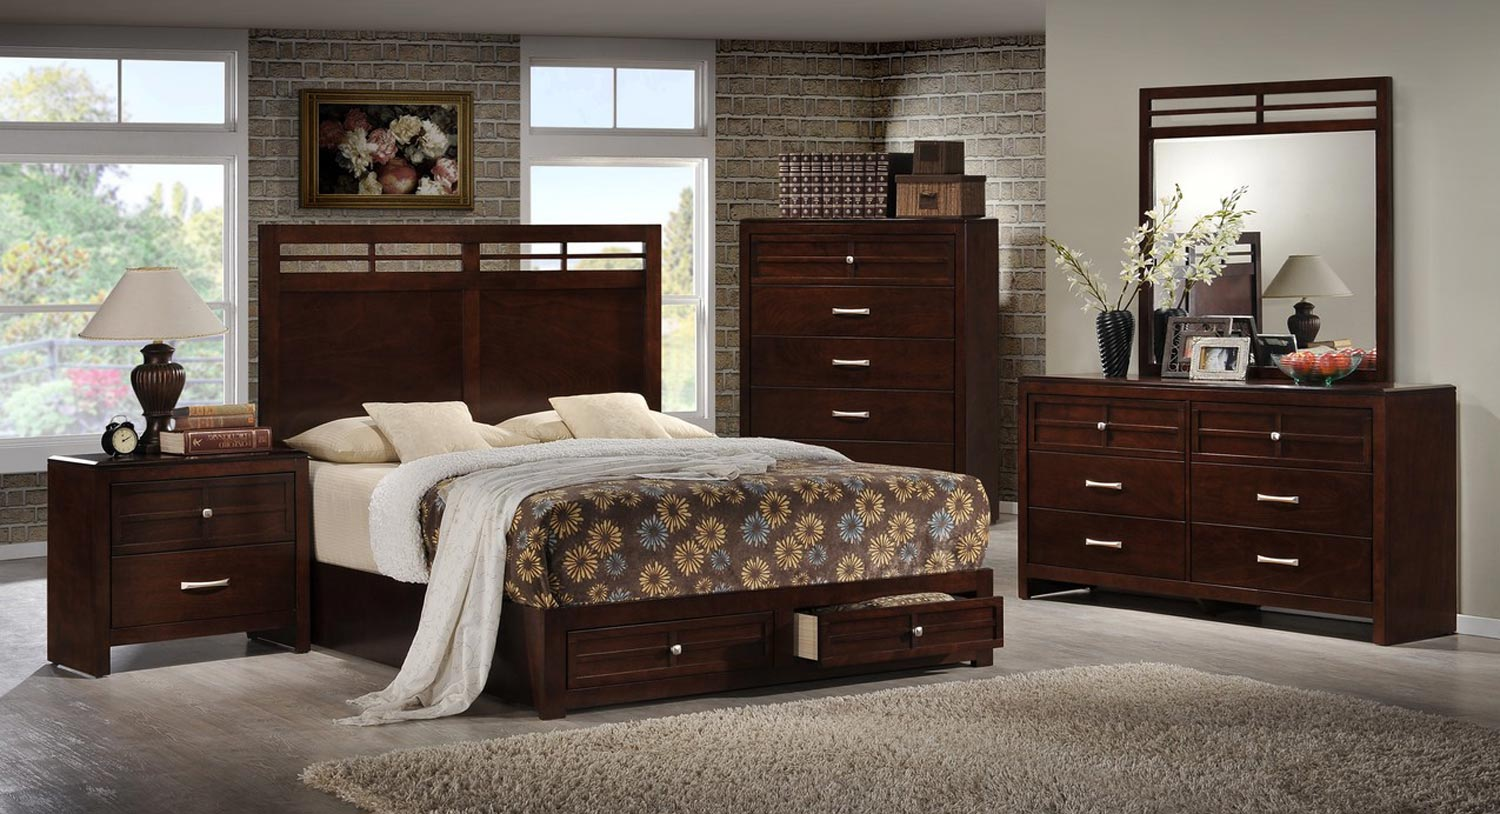 Global Furniture USA Abbey Bedroom Set - Merlot